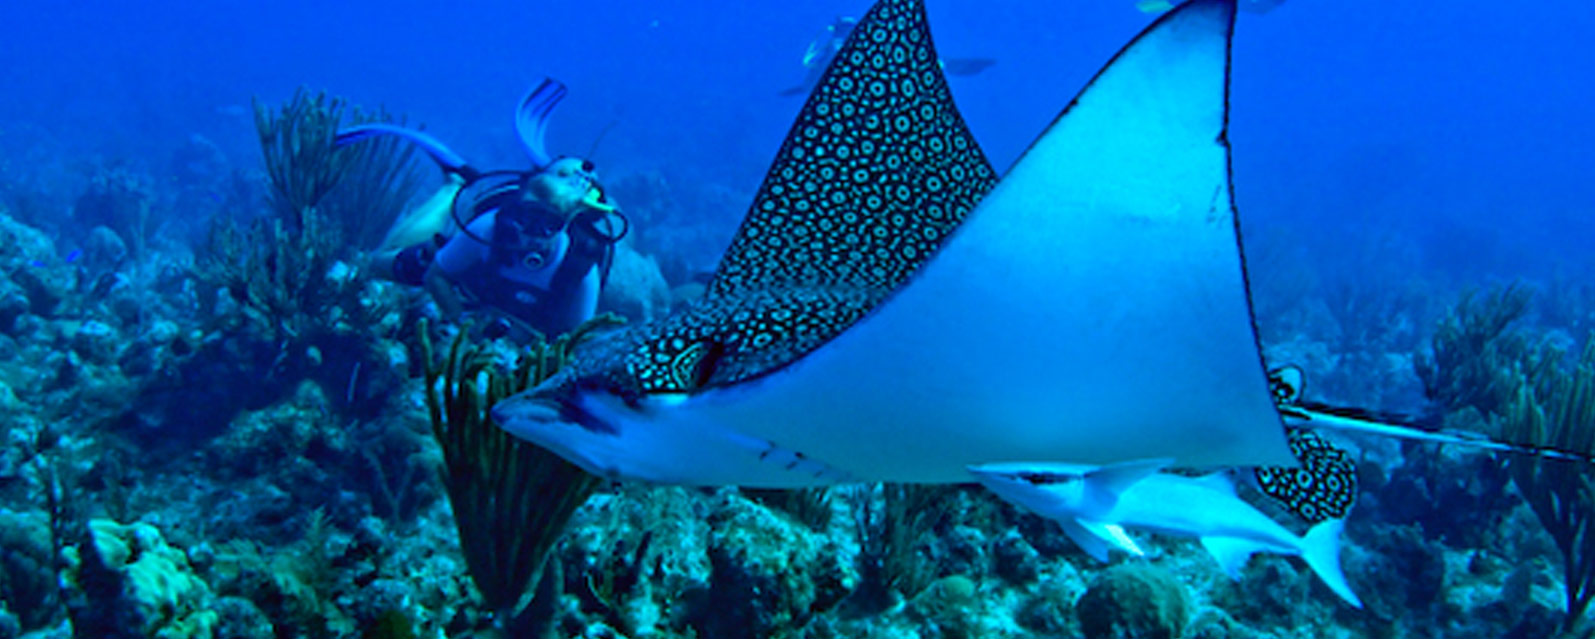 diving in Turks and Caicos Islands